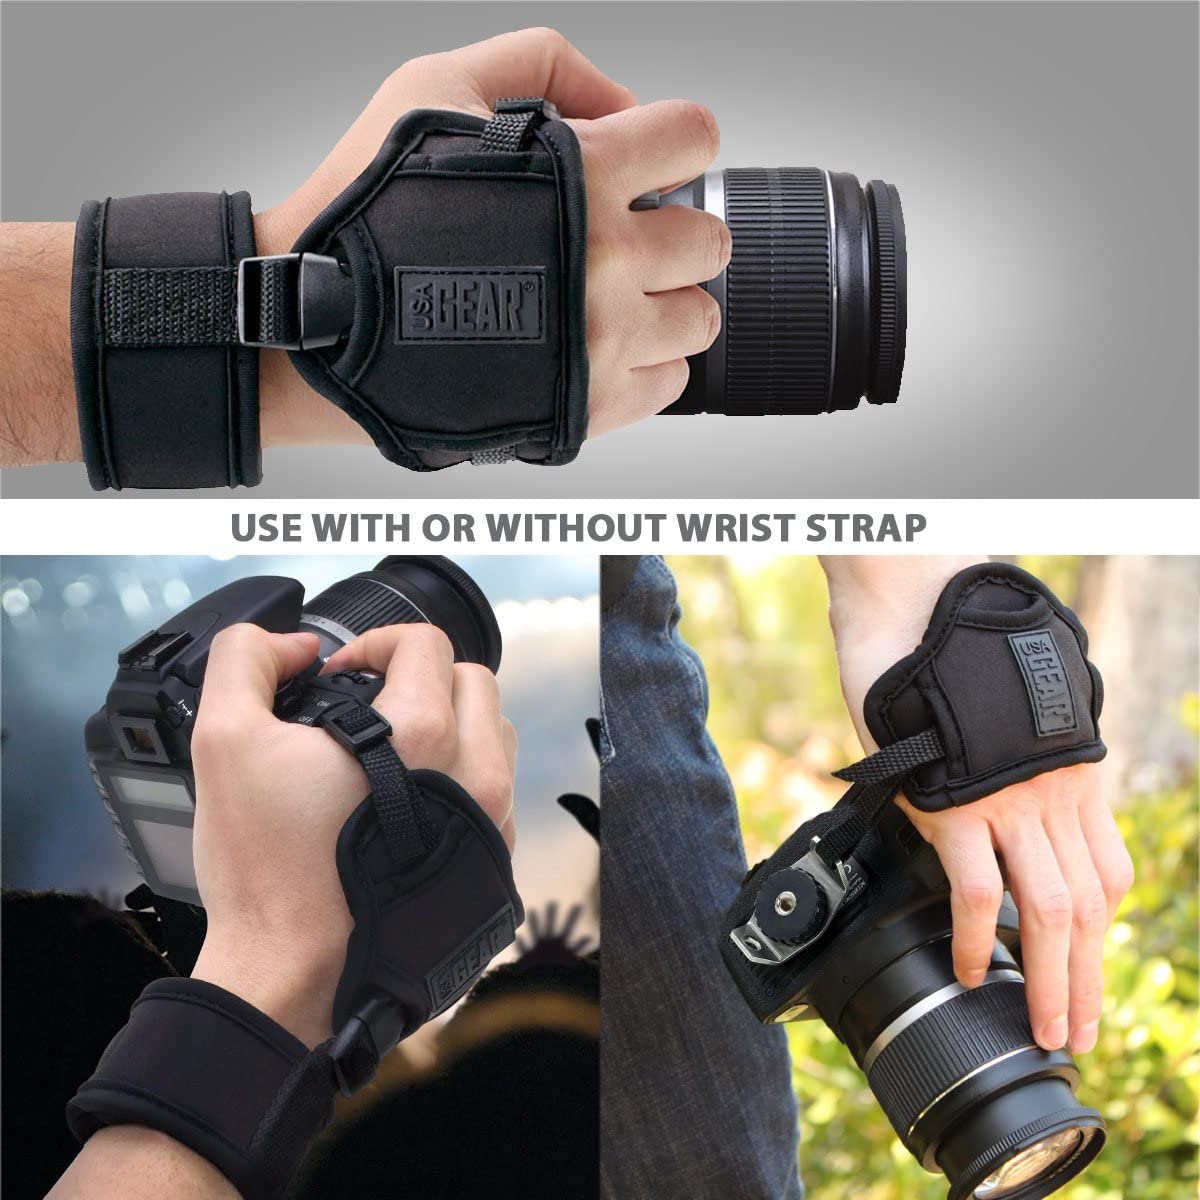 Point /& Shoot Cameras Fujifilm USA GEAR Professional Camera Grip Hand Strap with Galaxy Neoprene Design and Metal Plate Nikon Mirrorless Compatible with Canon Sony and more DSLR